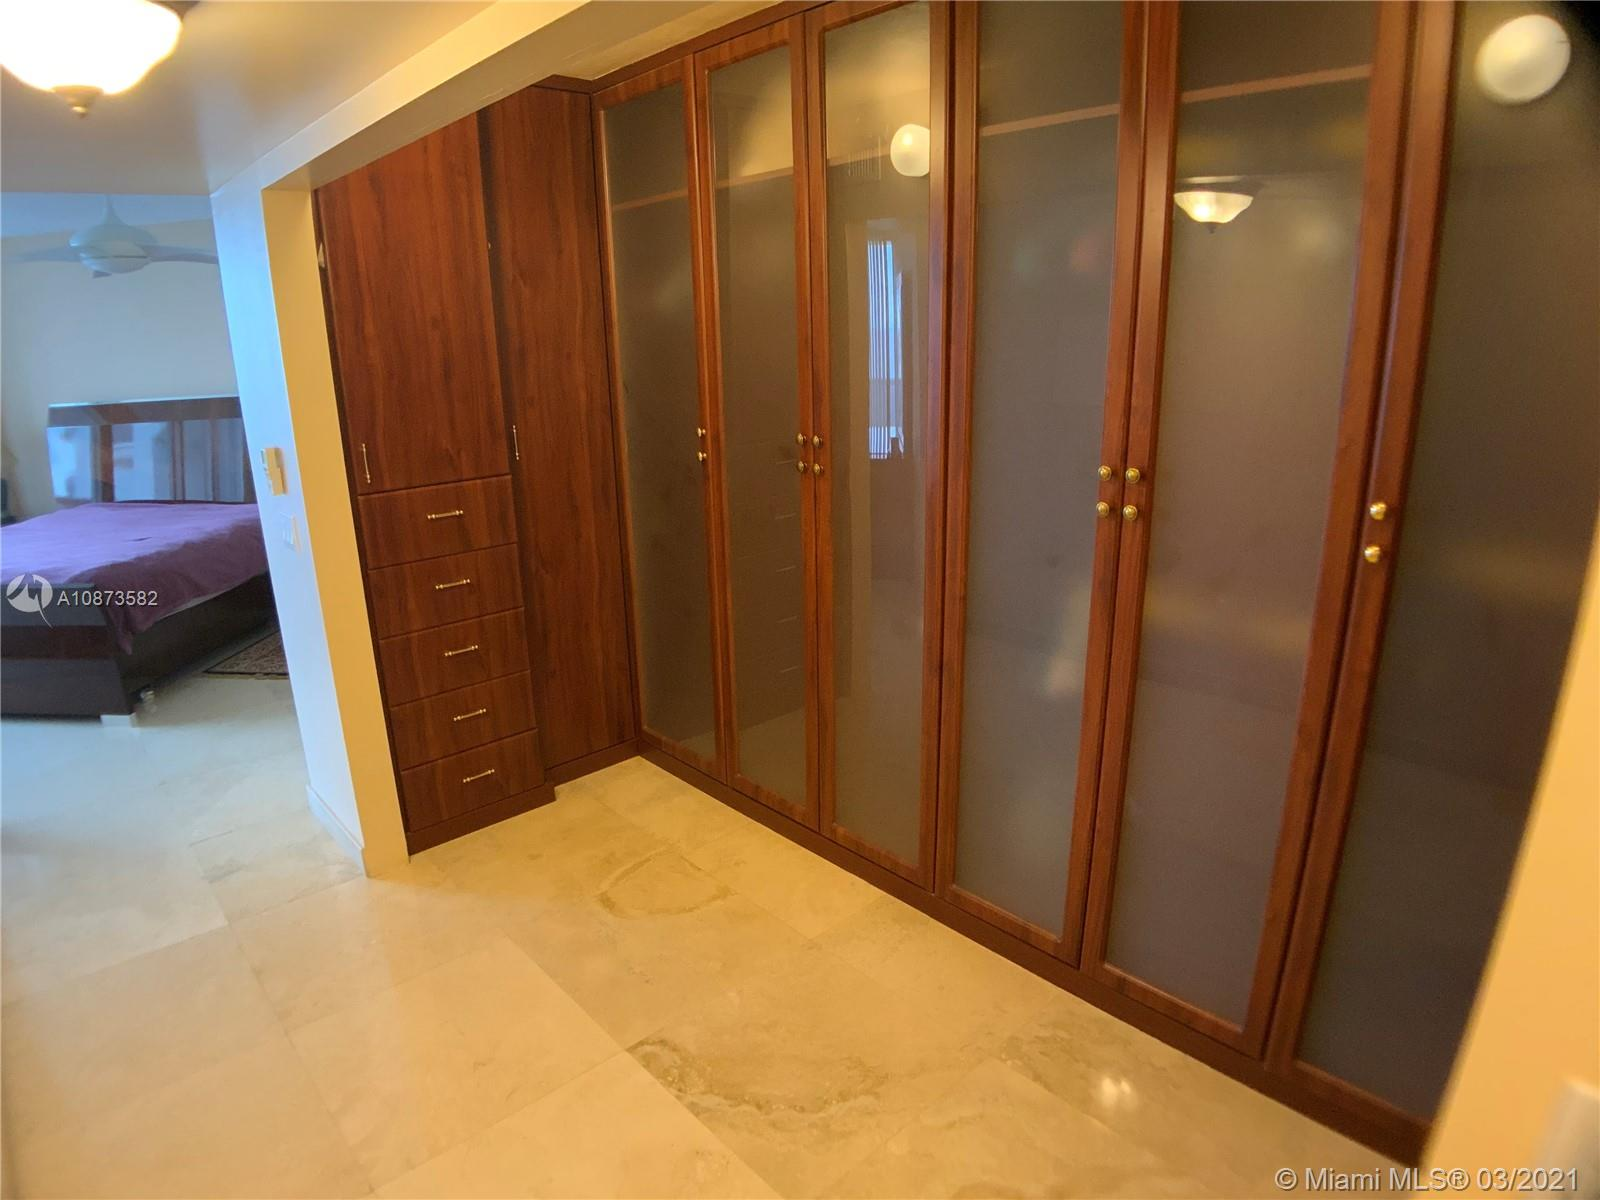 CLOSET IN THE MASTER BEDROOM